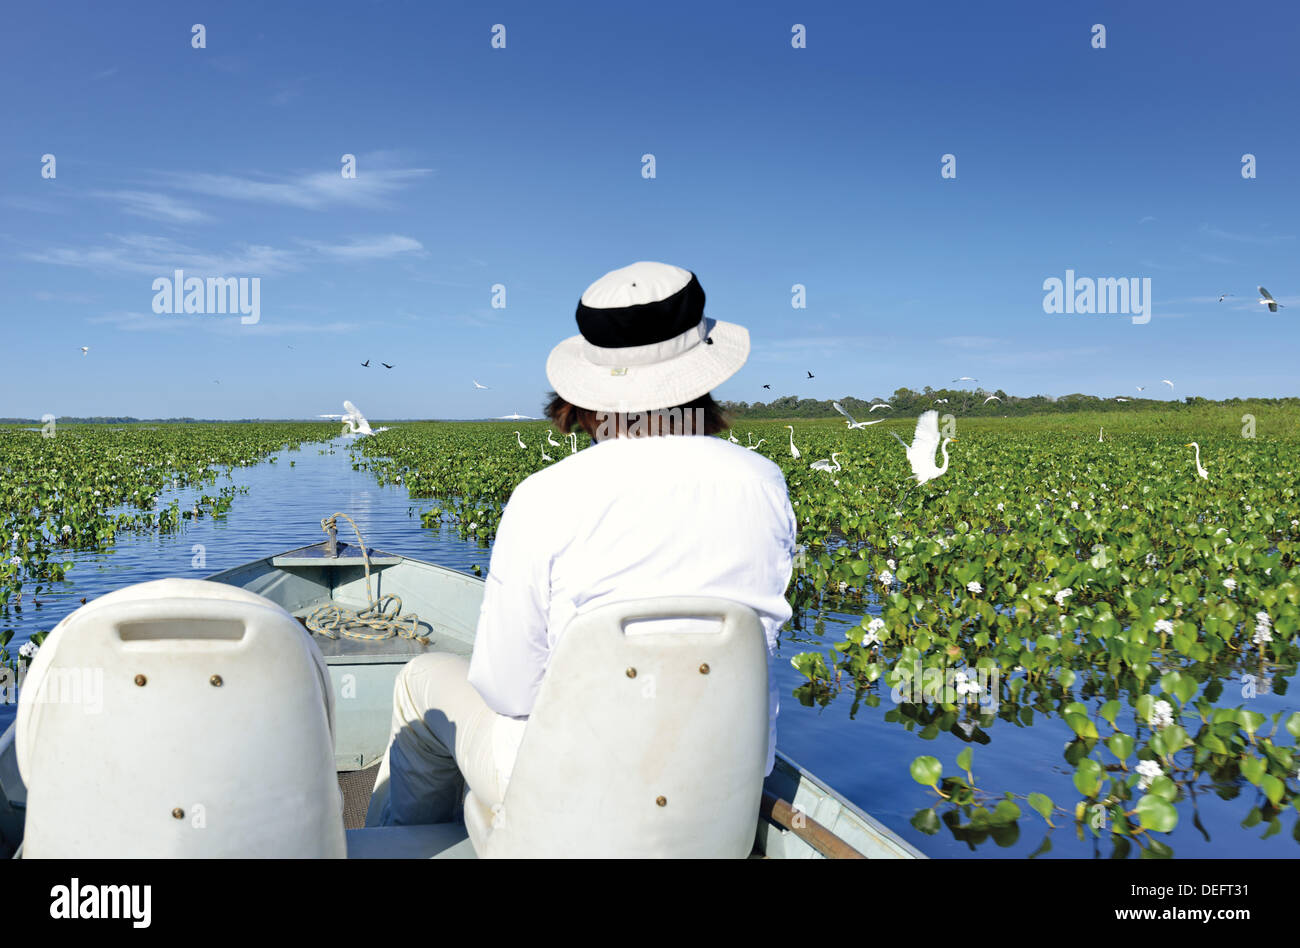 Brazil, Mato Grosso, Pantanal, Pousada Piuval, boat tour, boat trip, travel, tourism, nature, woman, tourist with hat,  white cloth, UV protection, sun, sunny, natural, water, waterlilies, birds, birdwatching, ornithology, Brazil, 2014, destinies in Brazil - Stock Image